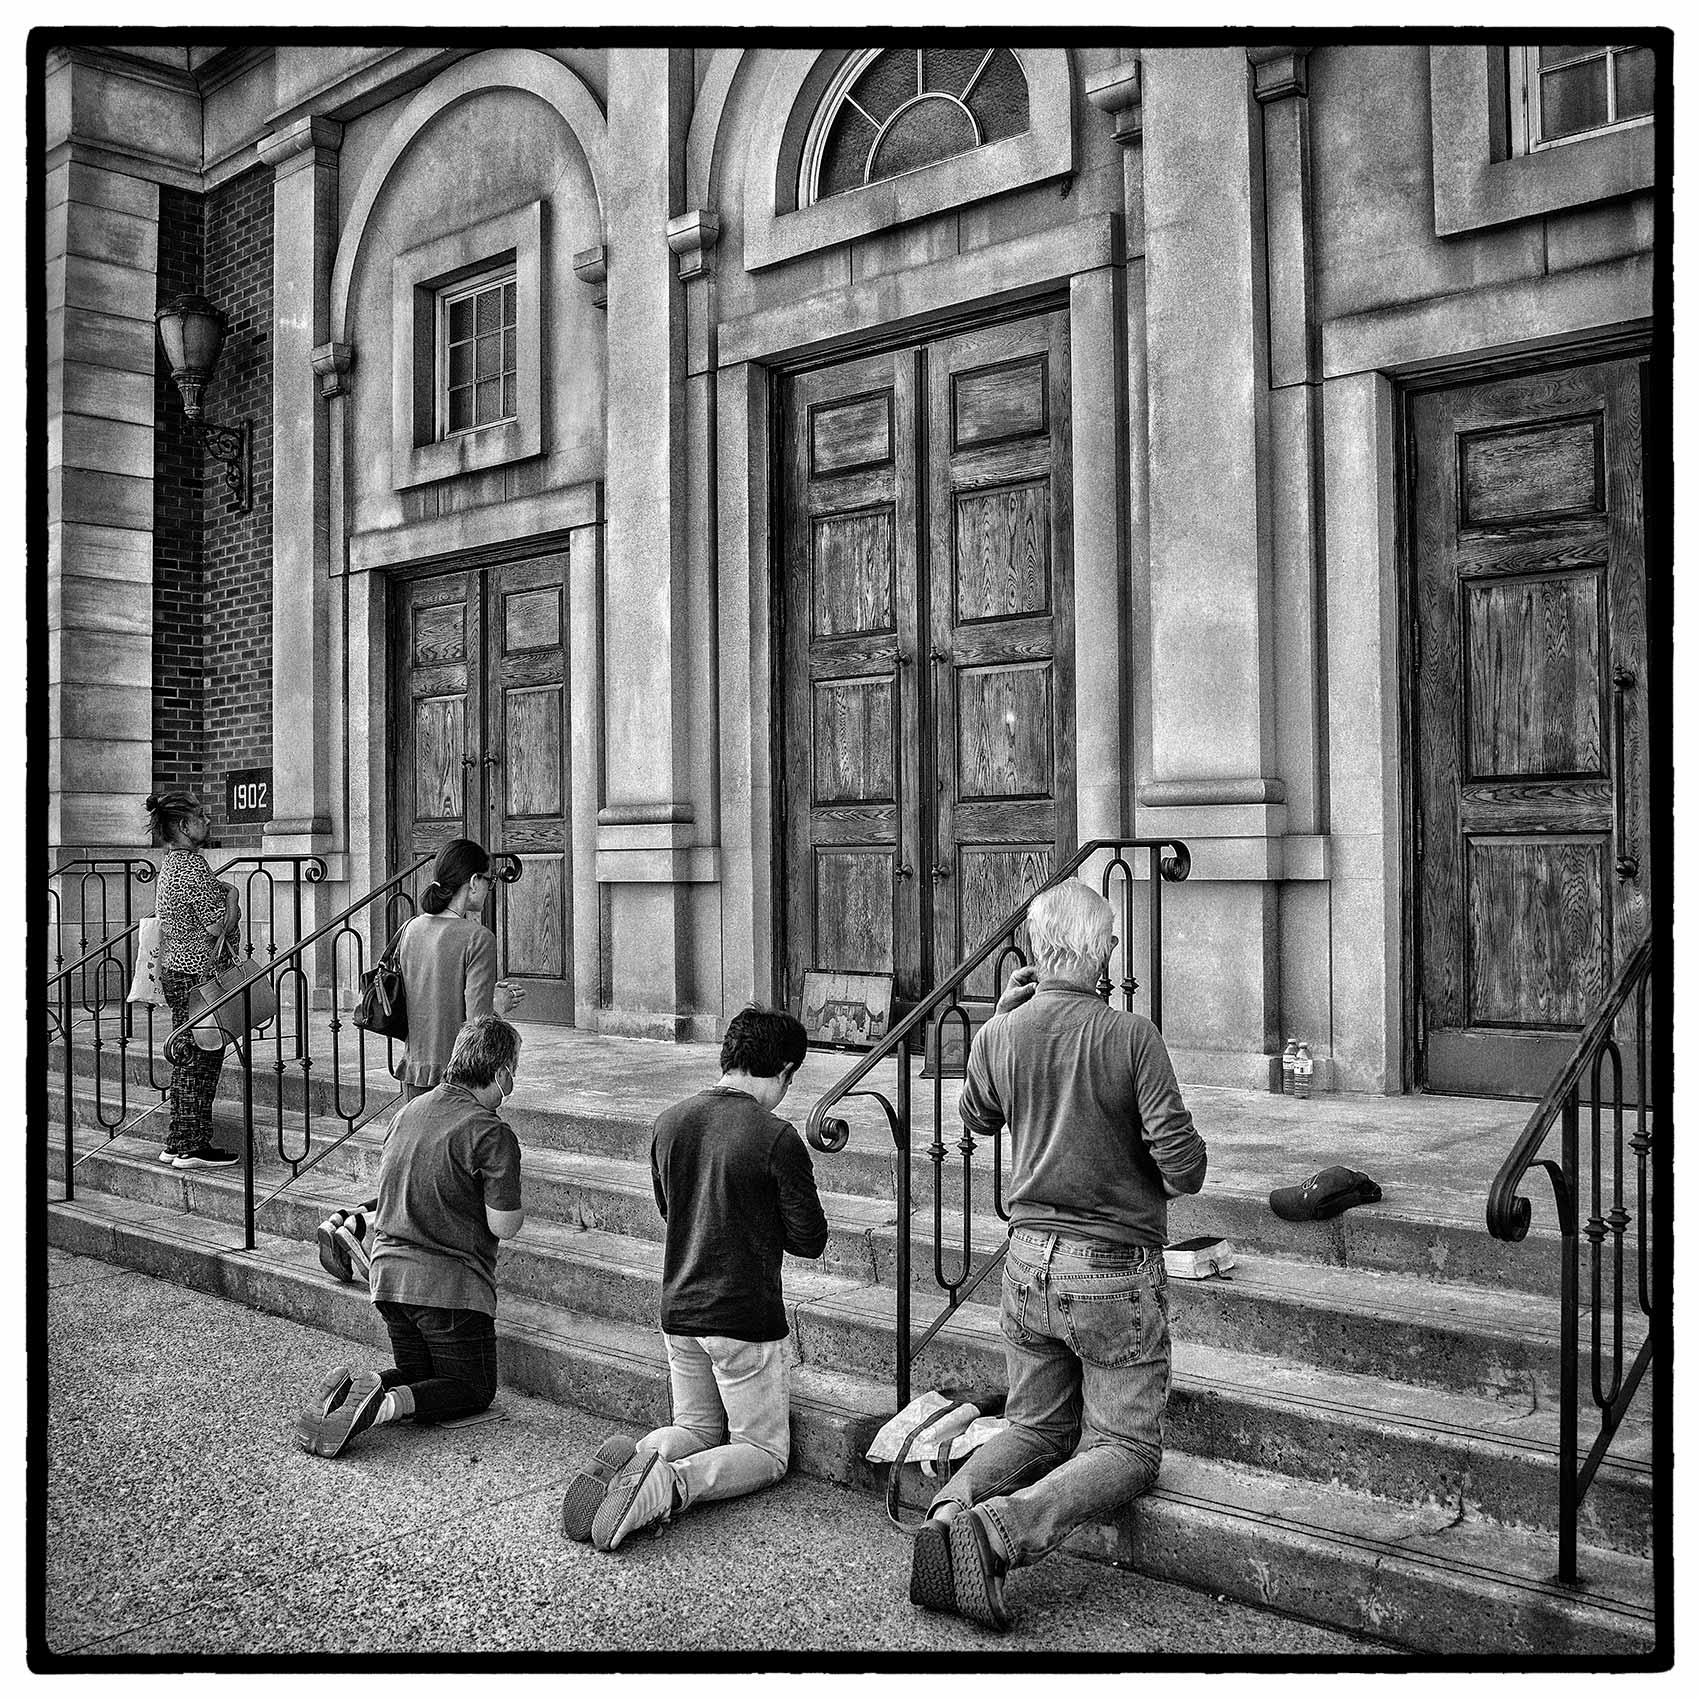 Parishioners pray on the stairs of a Toronto church during the Covid-19 Pandemic